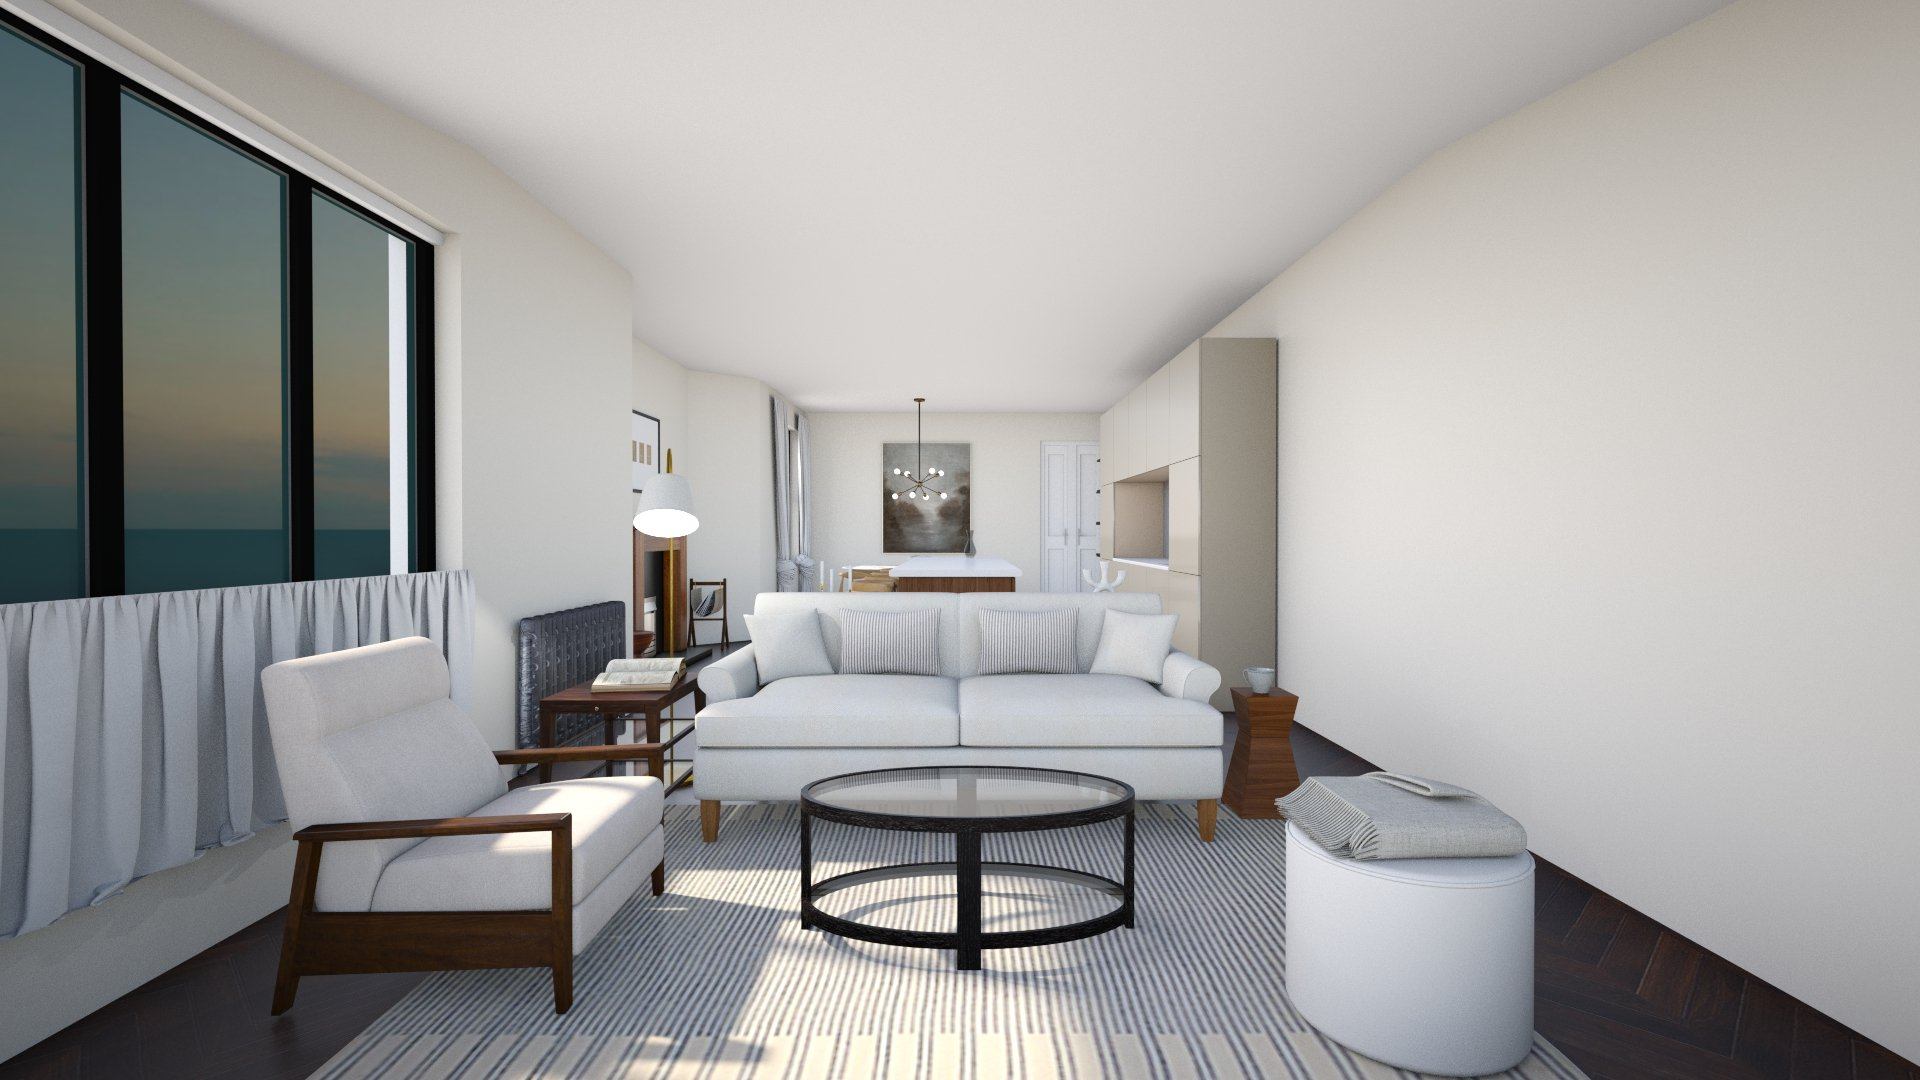 Project Render by Studio E1